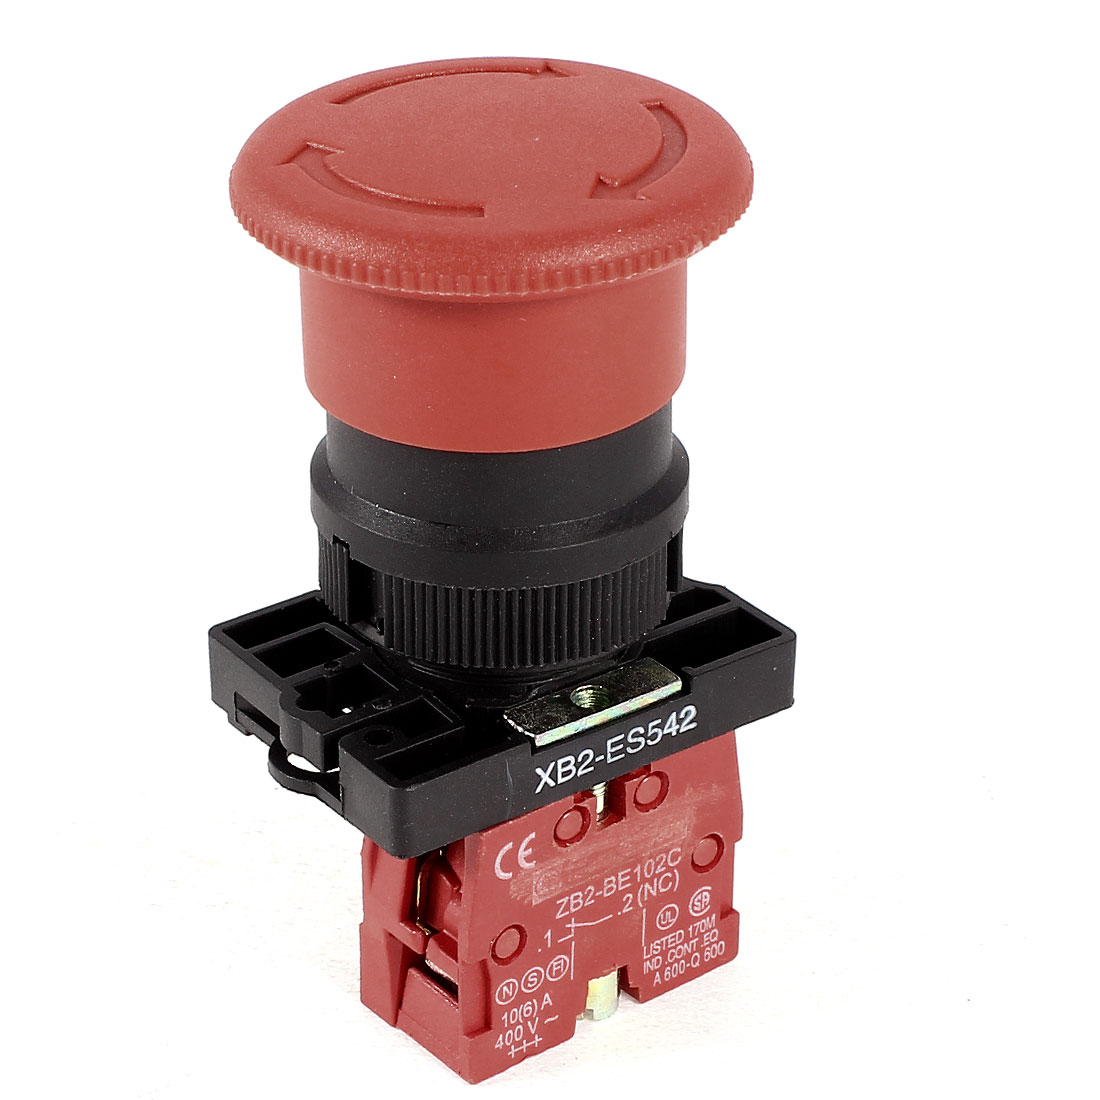 XB2-ES542 Red Mushroom Emergency Stop Push Button Switch 1 NC 600V 10A